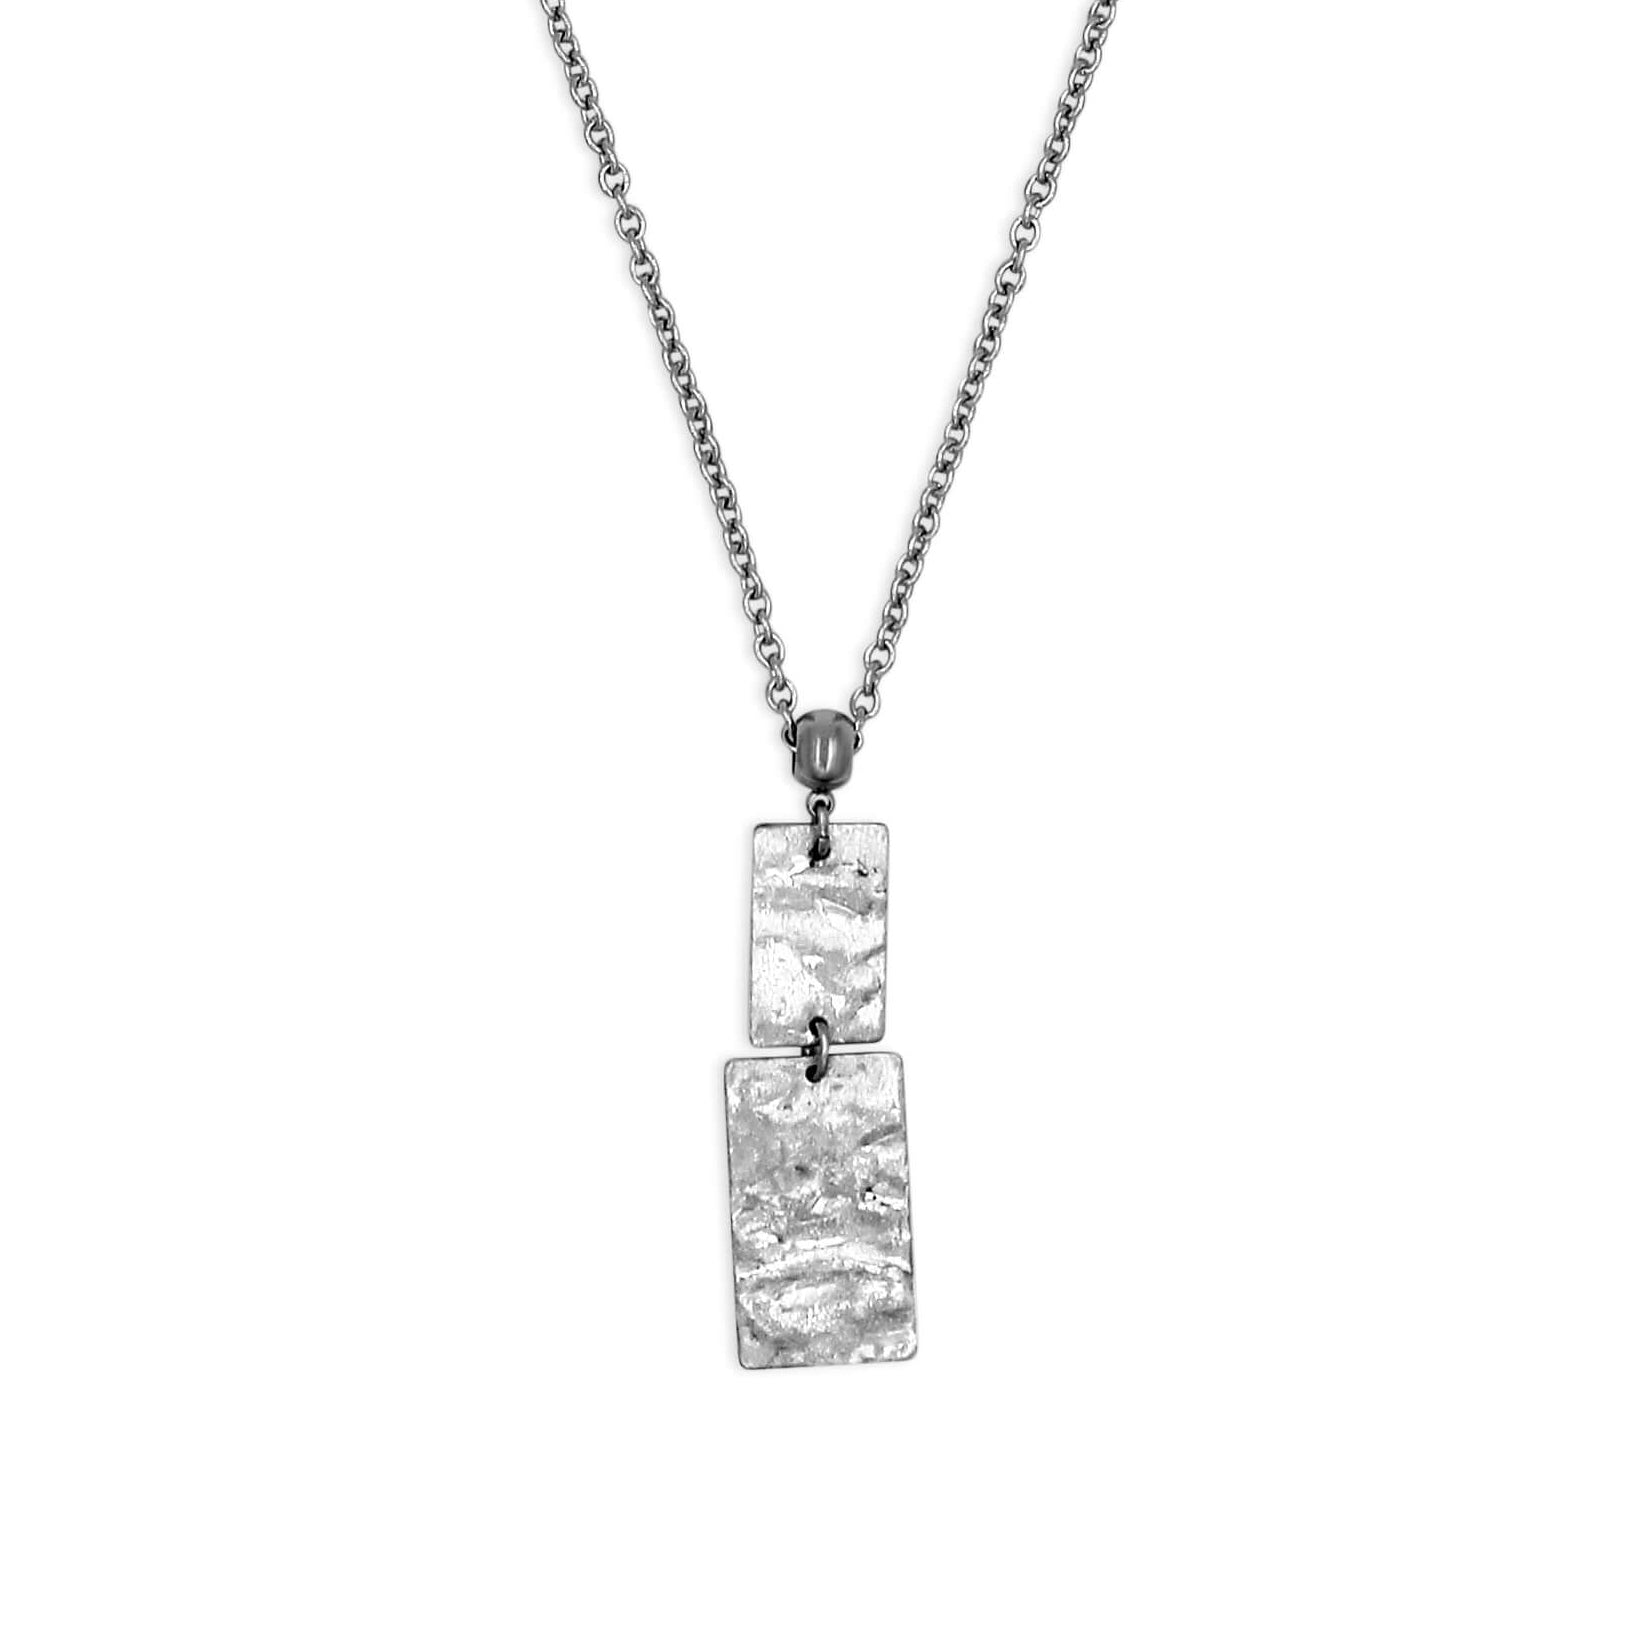 Silver Rectangle Long Pendant Necklace - Creative Jewelry by Marcia - Asymmetrical Jewelry - Timeless Jewelry